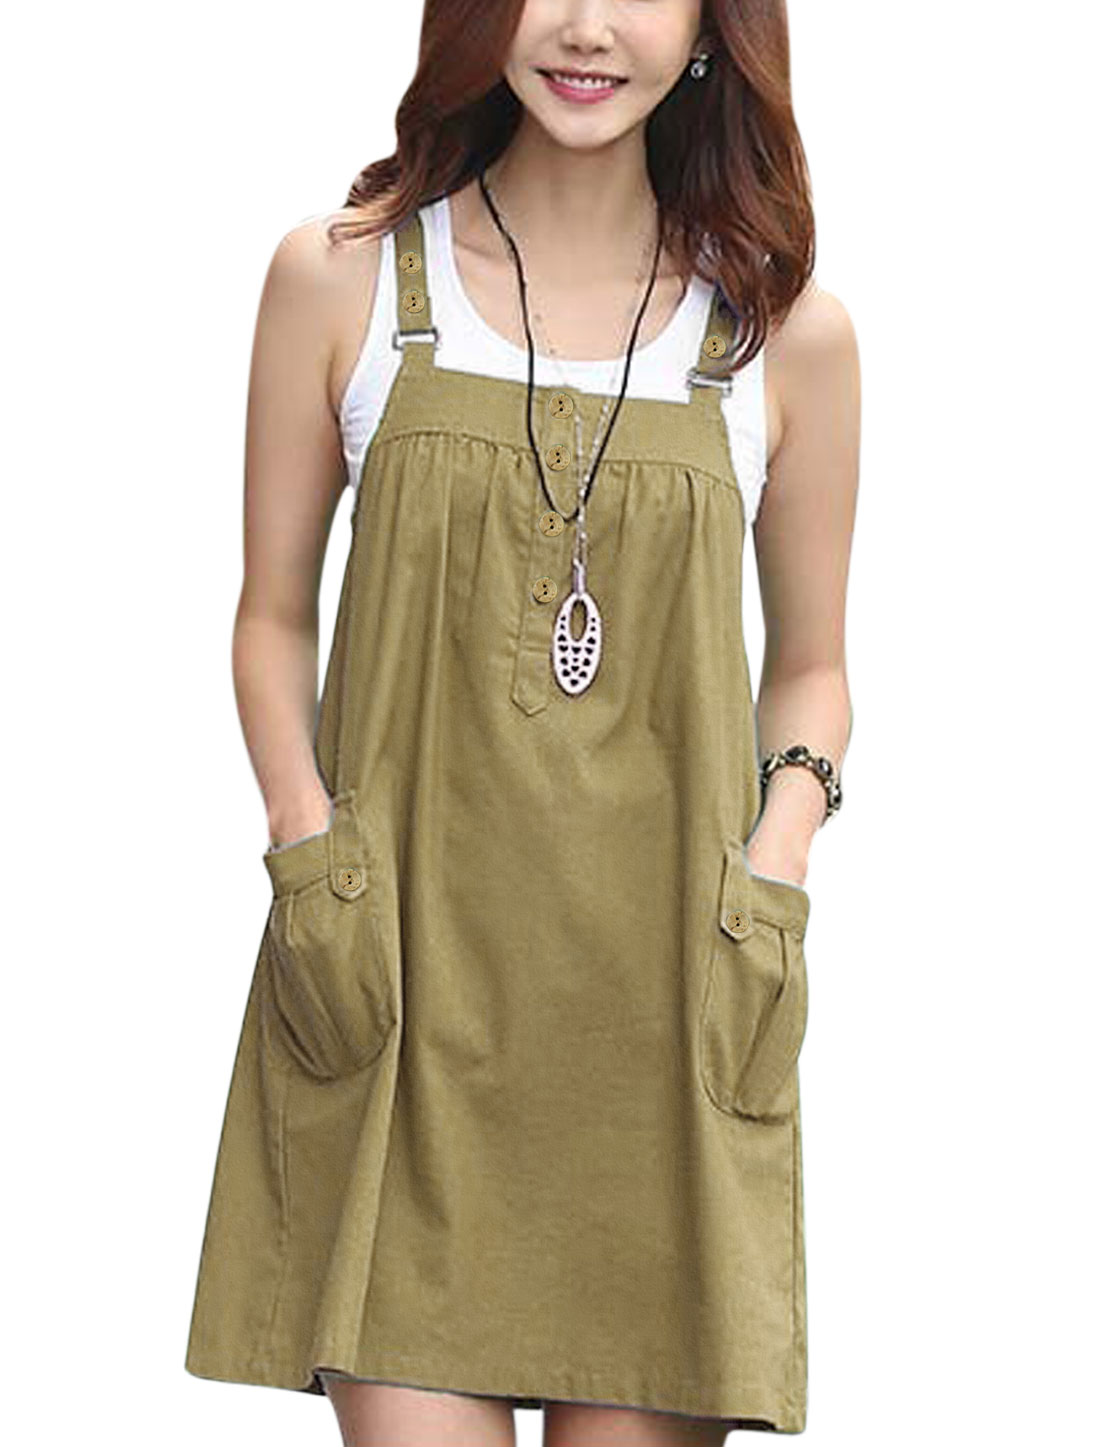 Woman Buttons Closure Two Pockets Front Unlined Suspender Dress Camel M